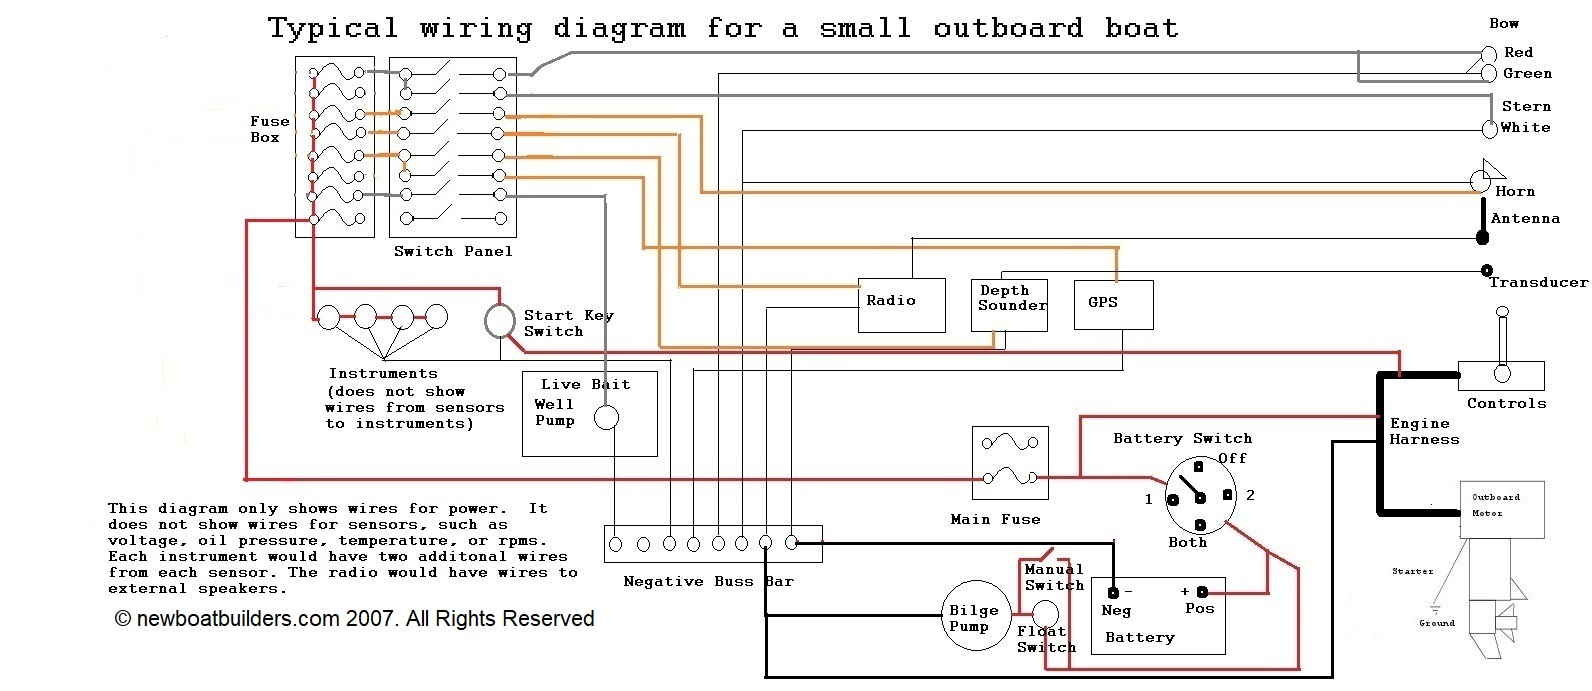 Battery Switch For Boat Wiring Diagram from newboatbuilders.com